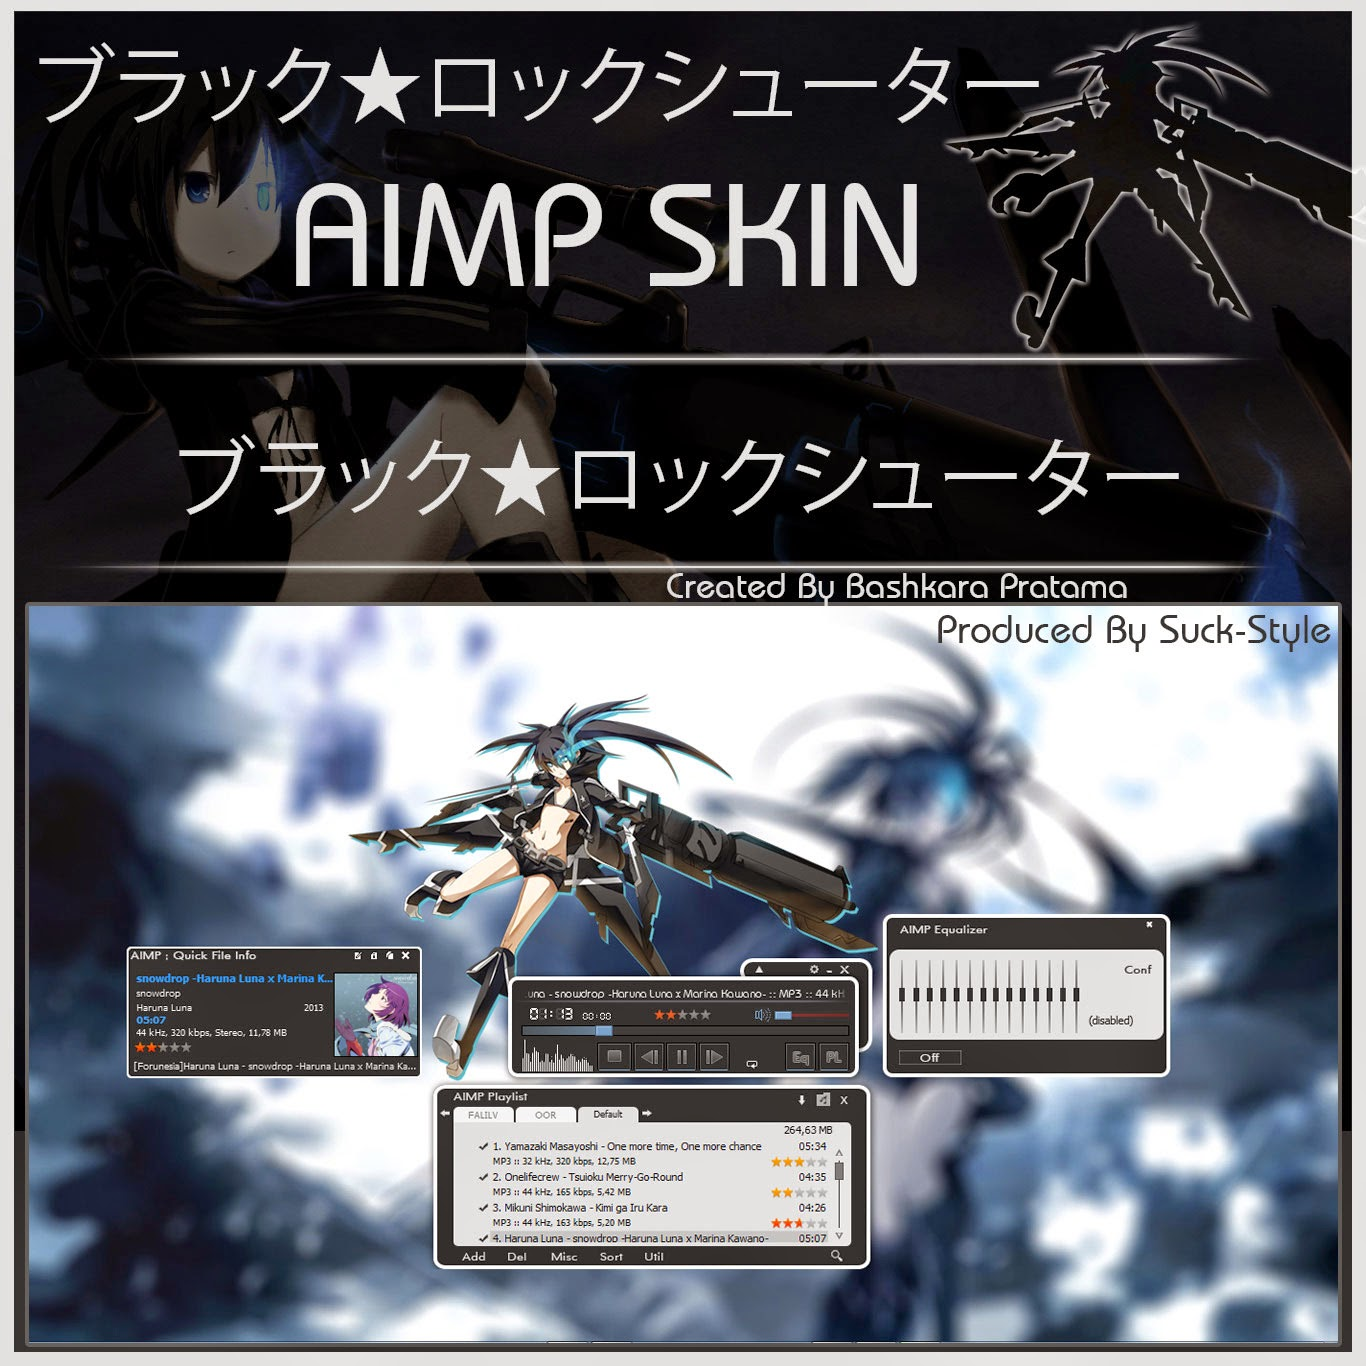 Anime AIMP Skin Black Rock Shooter Image - Suck-Style